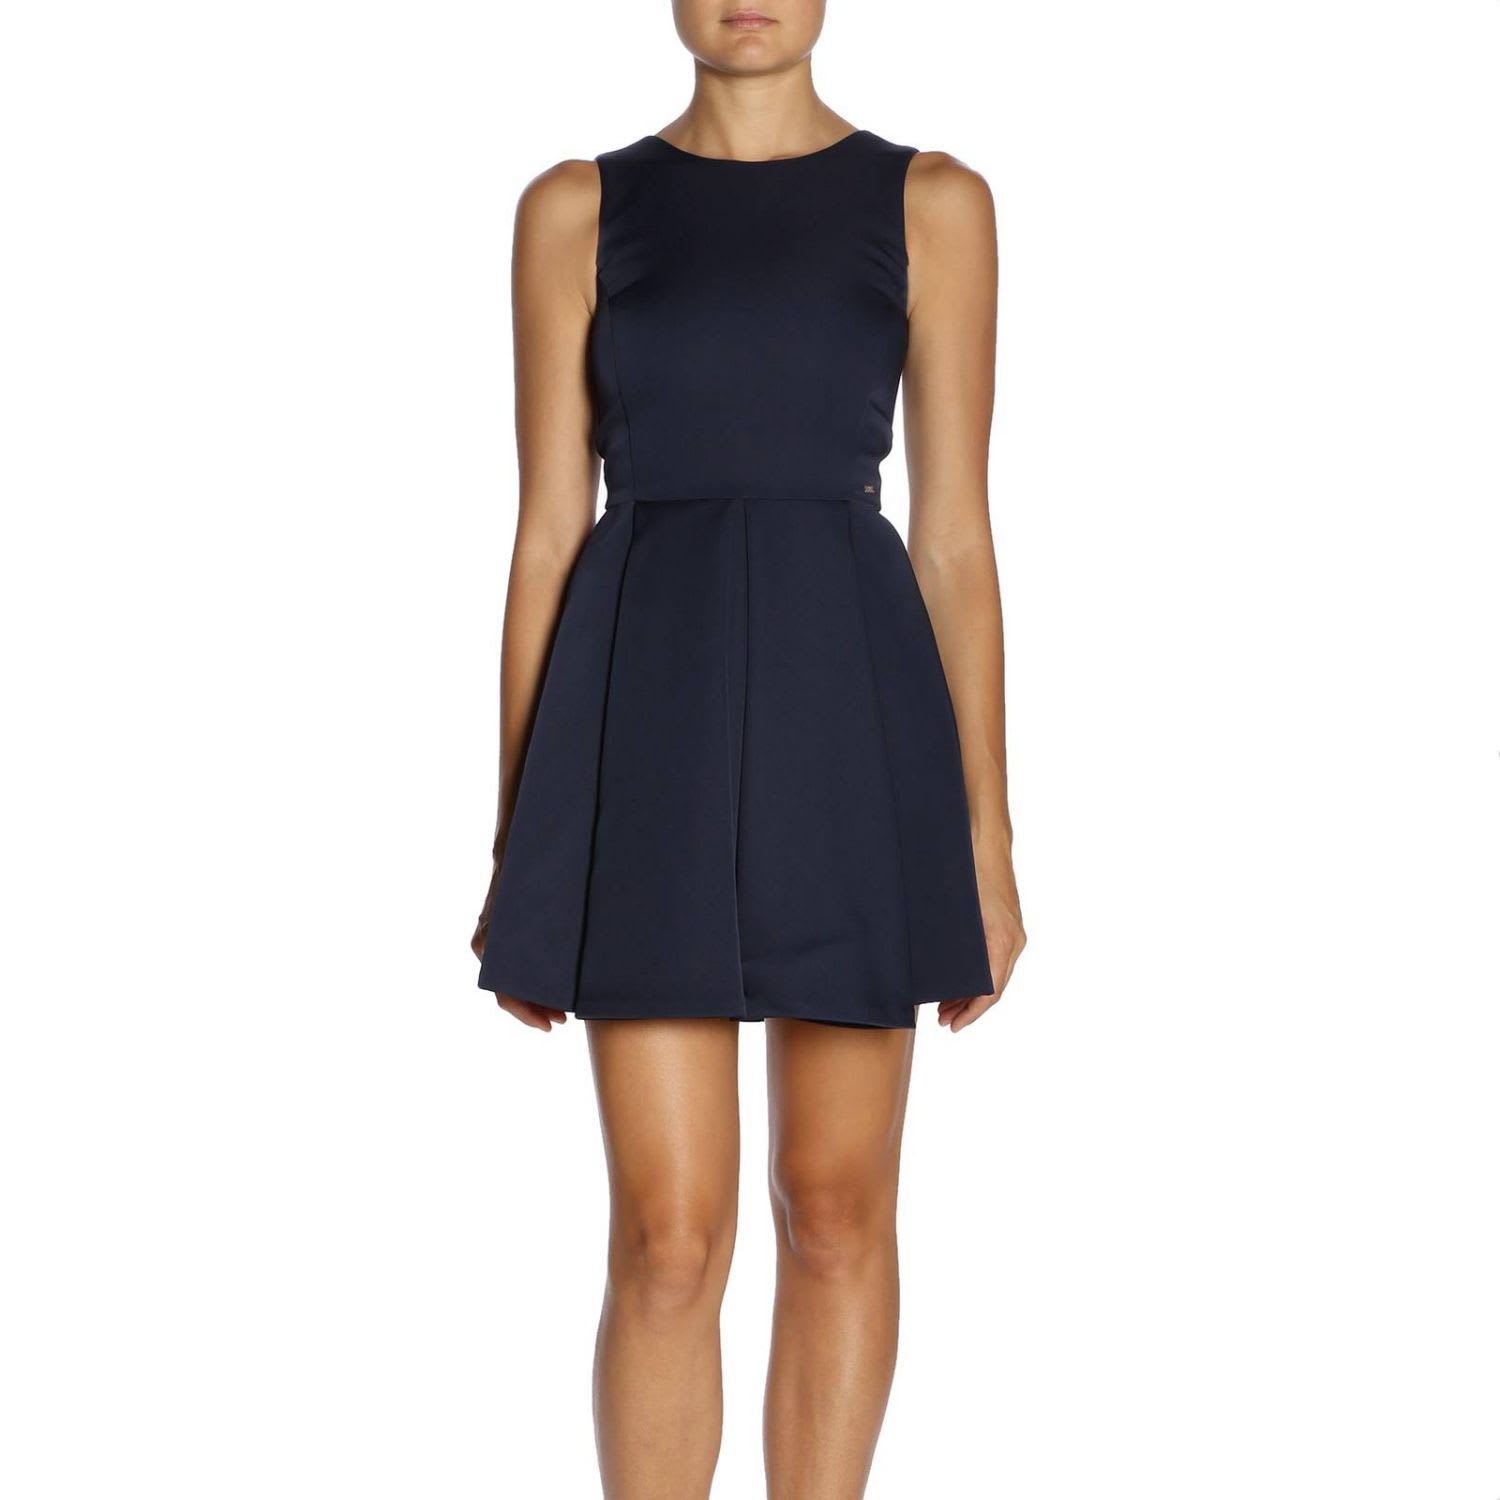 Armani Exchange Dress Dress Women Armani Exchange